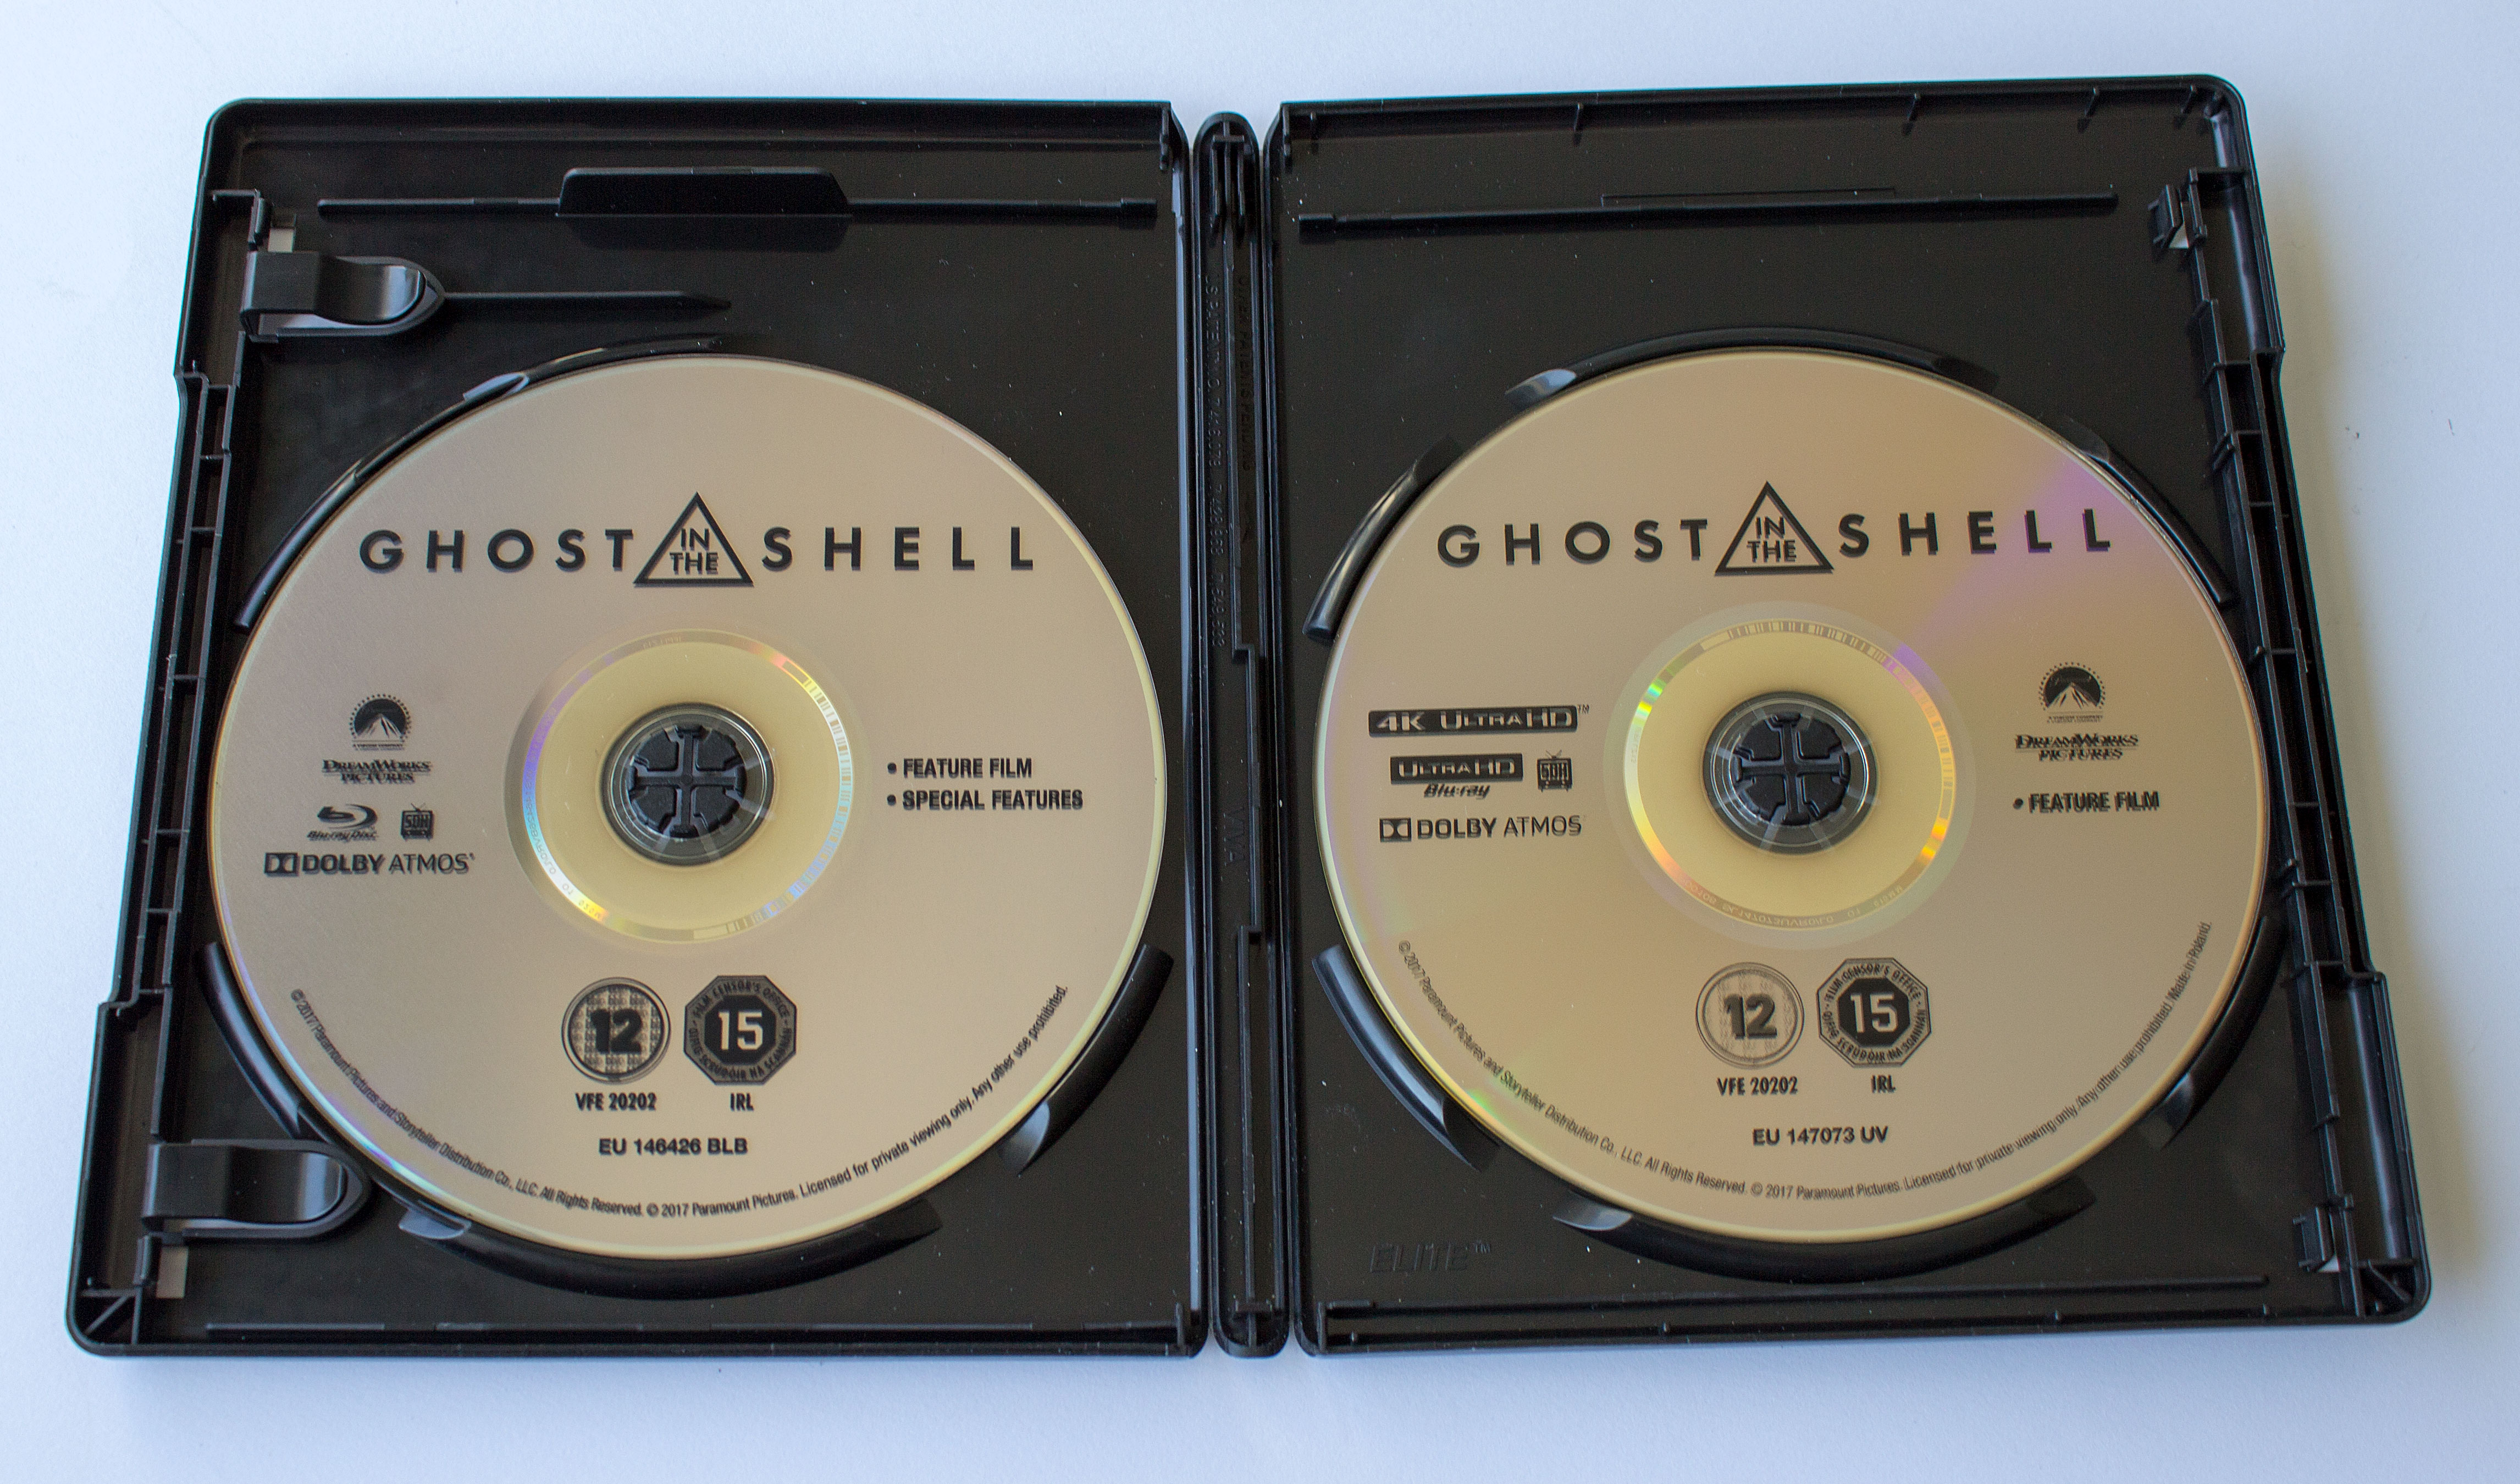 ghost_in_the_shell_discs